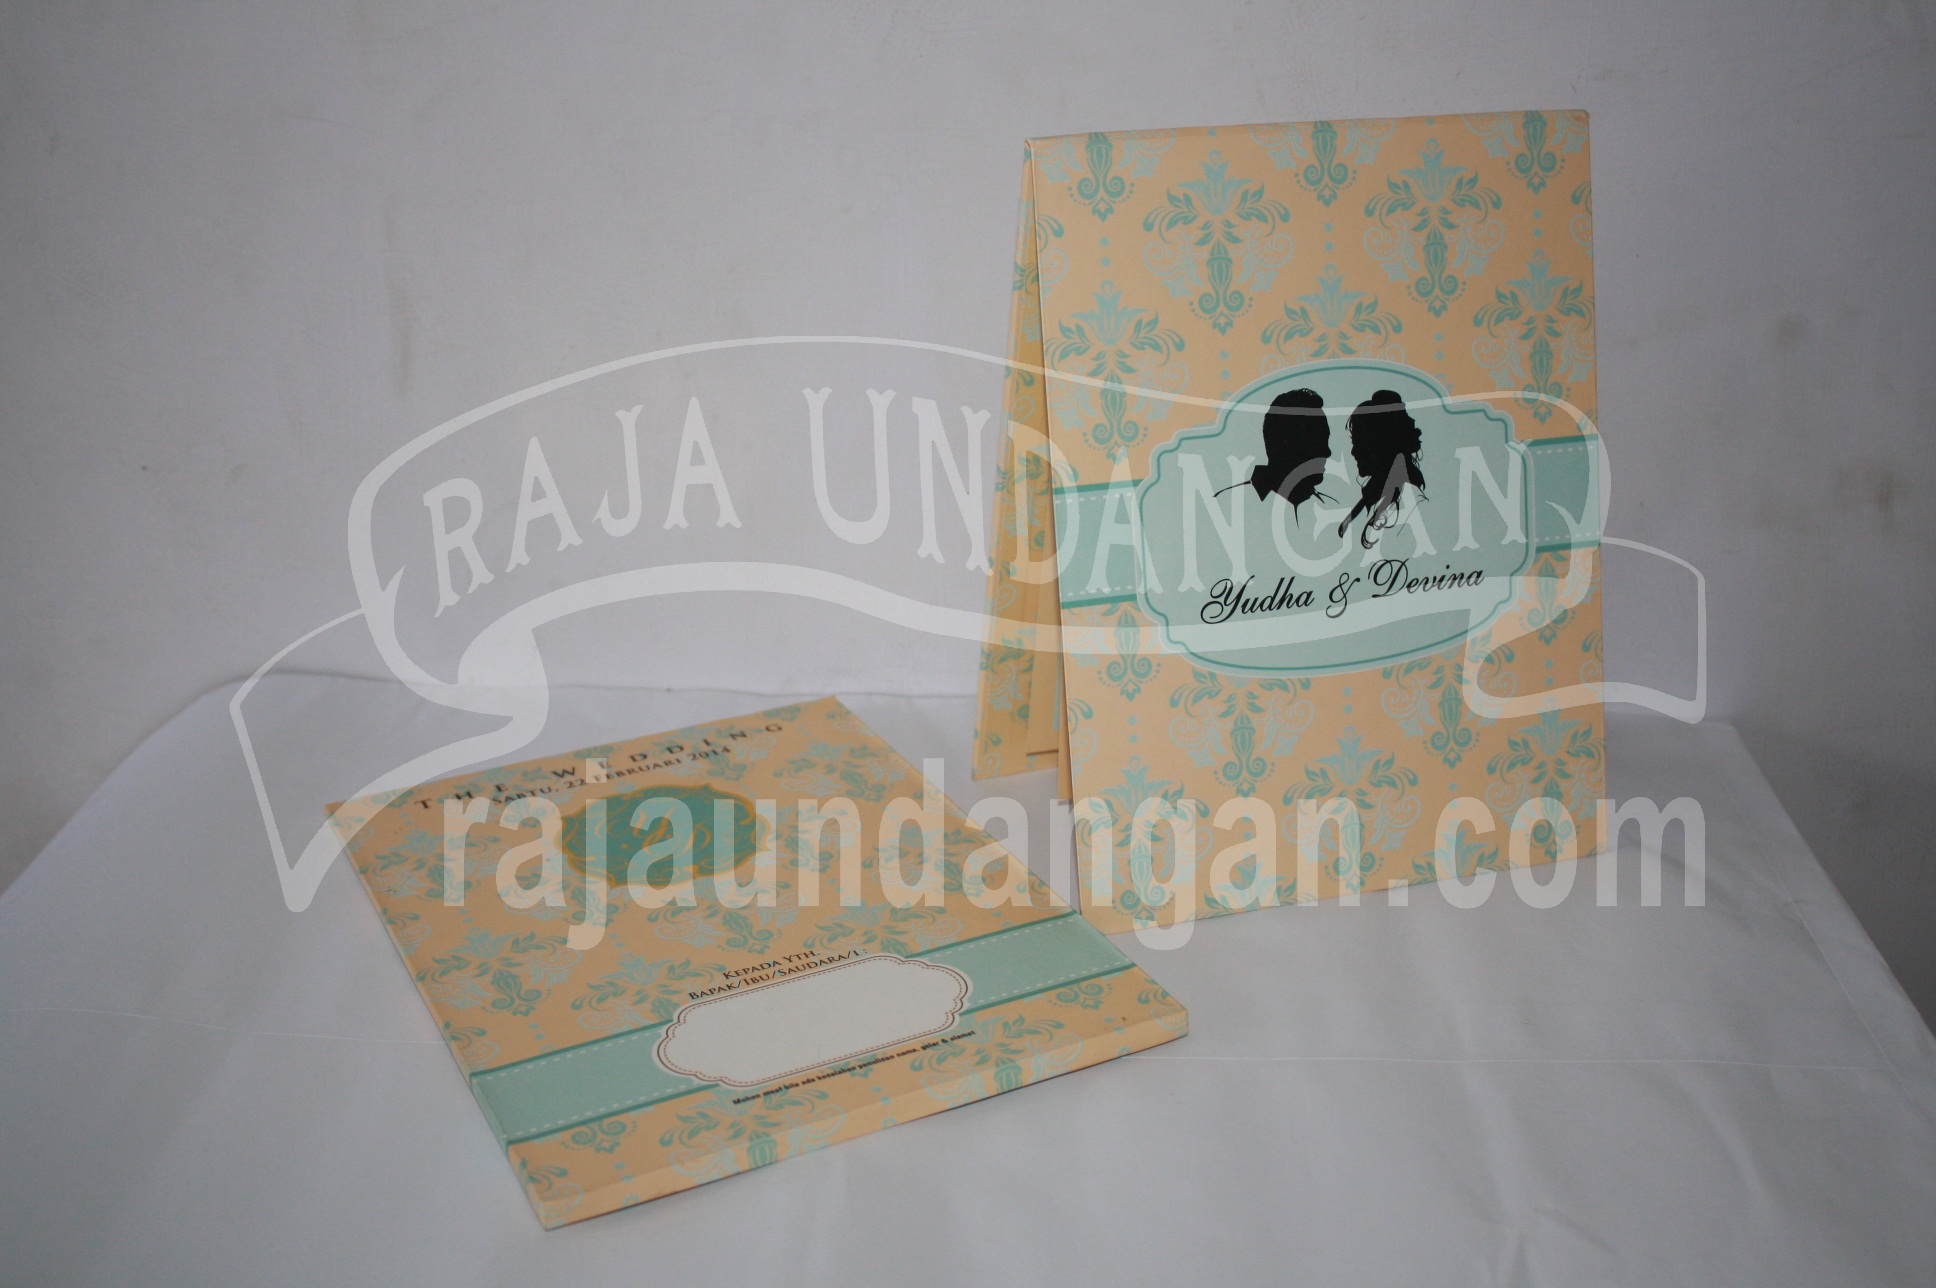 Undangan Pernikahan Hardcover Pop Up Pakai Amplop Yudha dan Devina EDC 47 - Percetakan Wedding Invitations Simple dan Elegan di Putat Jaya